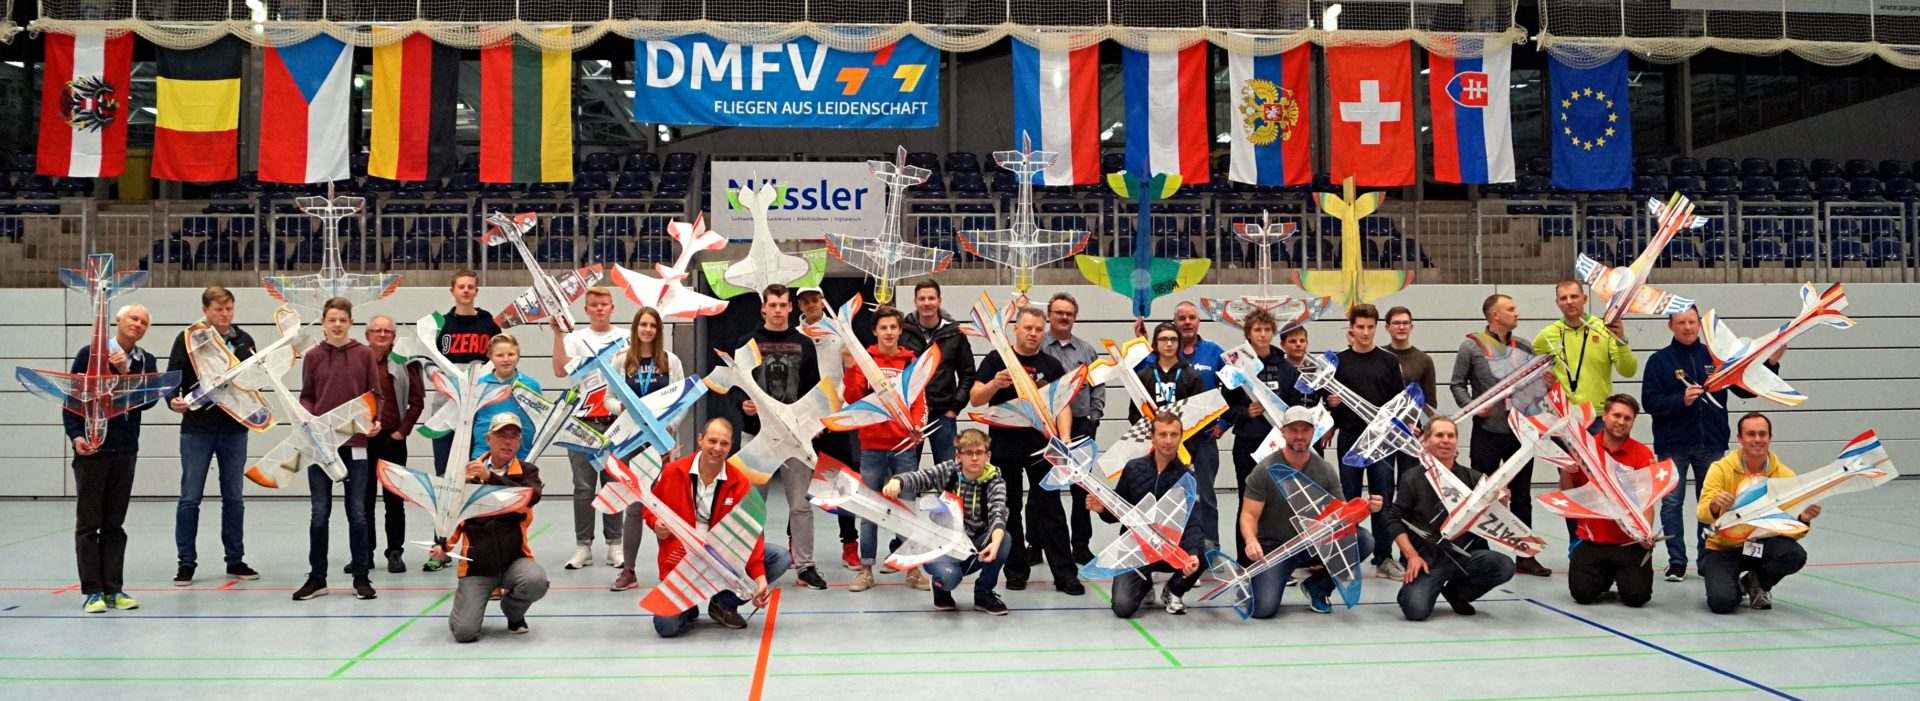 DM Indoor Kunstflug 2018 – Internationales Treffen in der Euregio